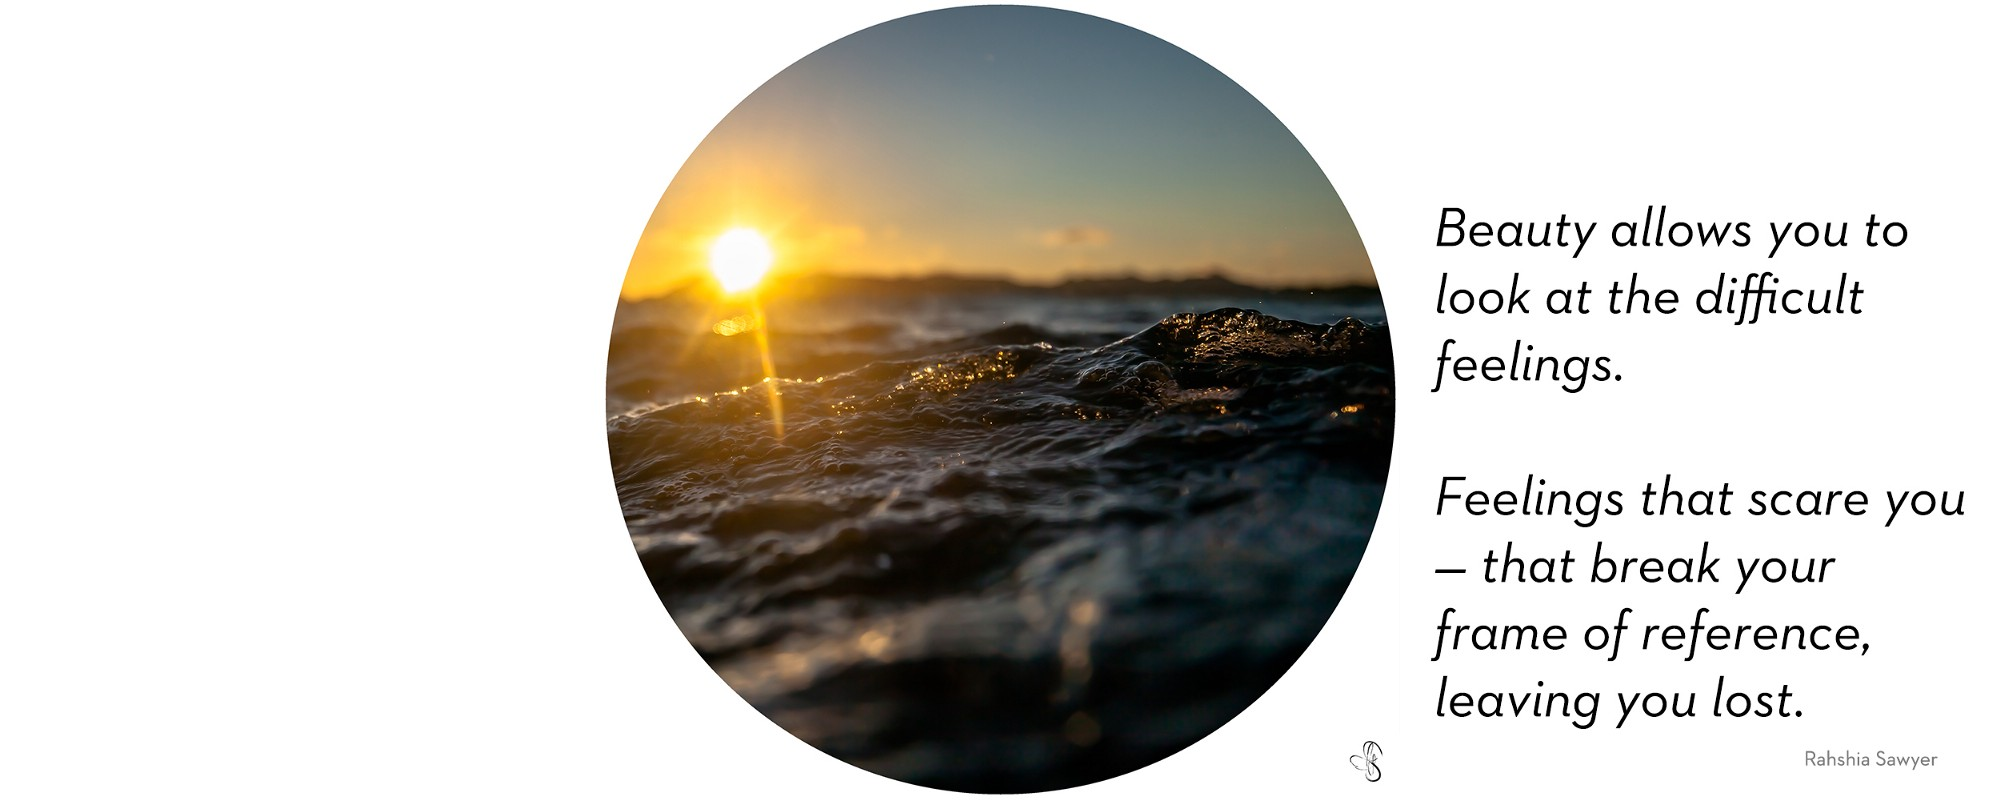 """Photograph of the sun setting on the ocean. """"It allows you to look at the difficult feelings. The jumbled, messy, disconnected feelings. Feelings that scare you—that break your frame of reference, leaving you lost."""""""